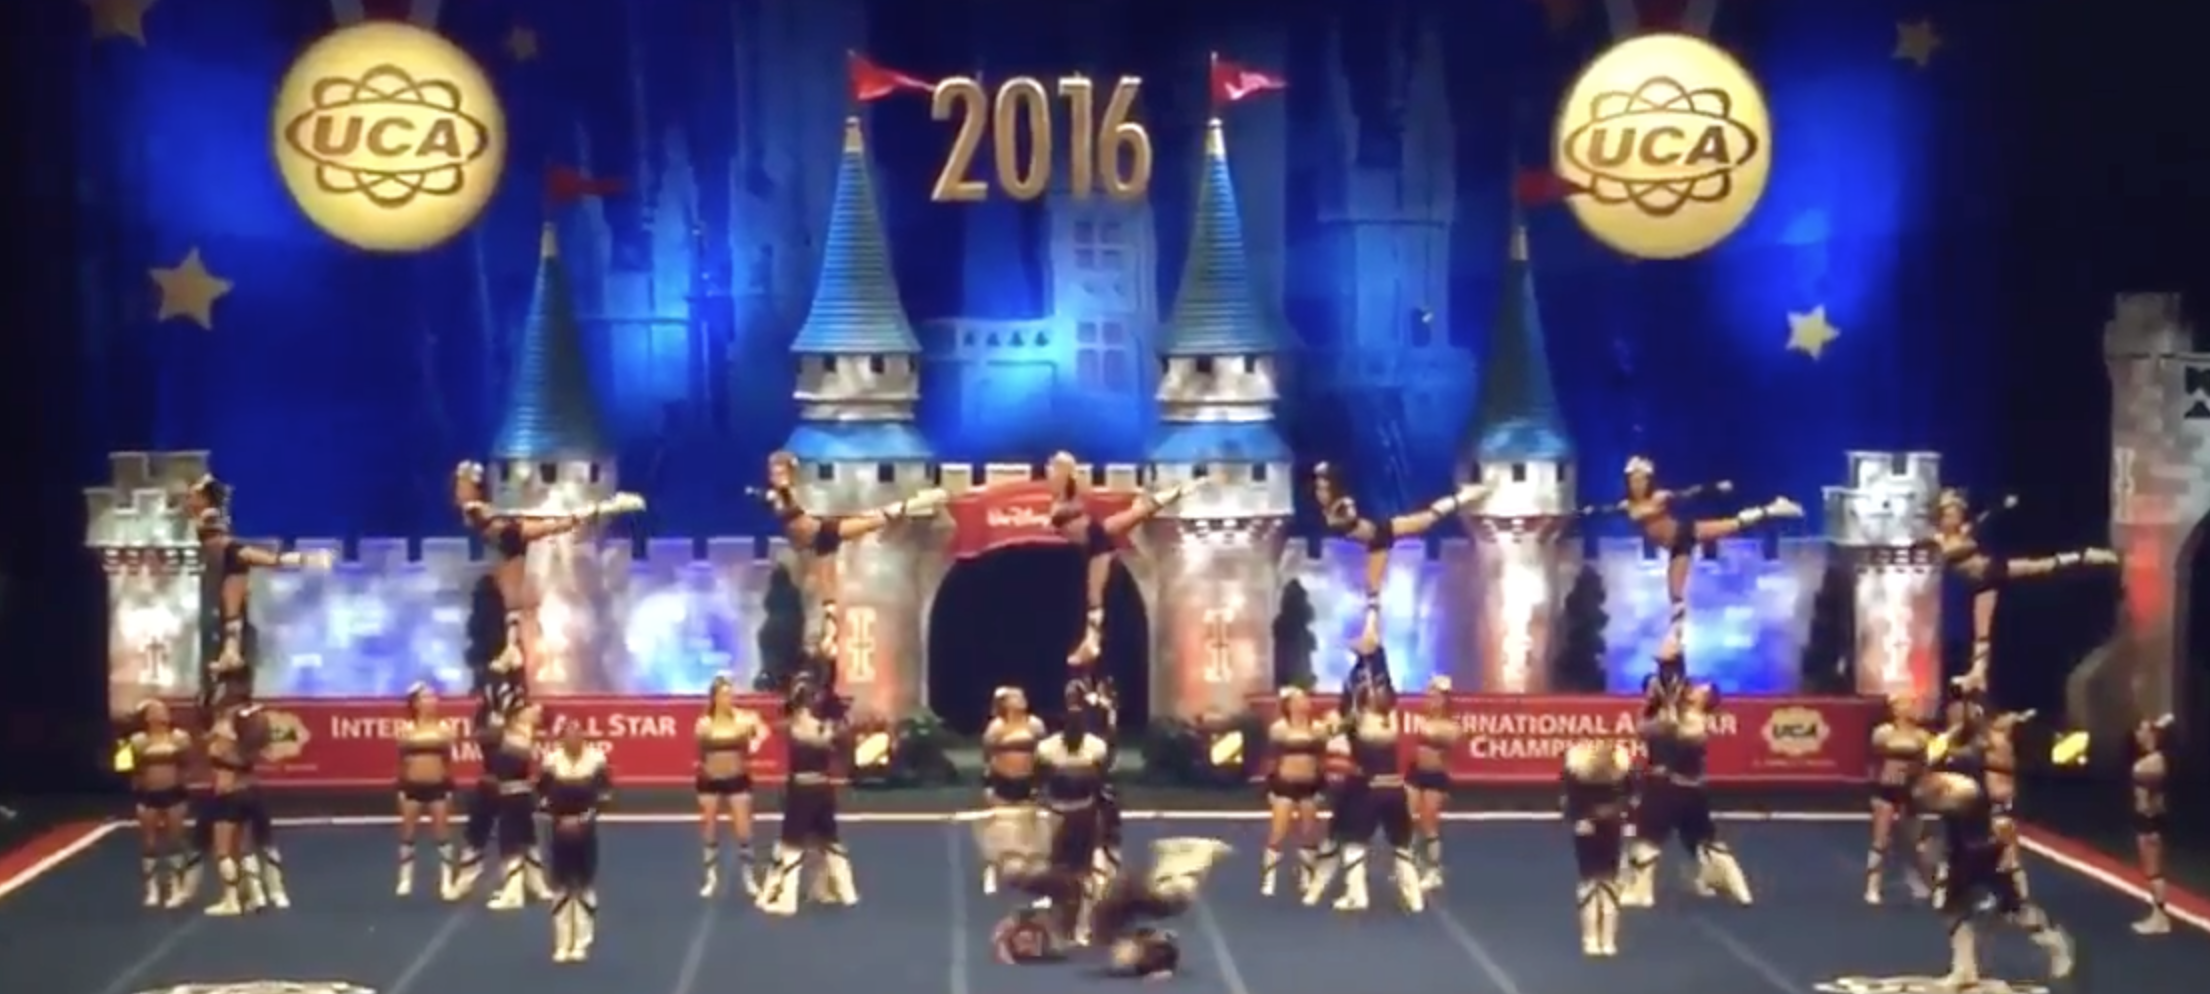 uca nationals 2016 day 2 final results